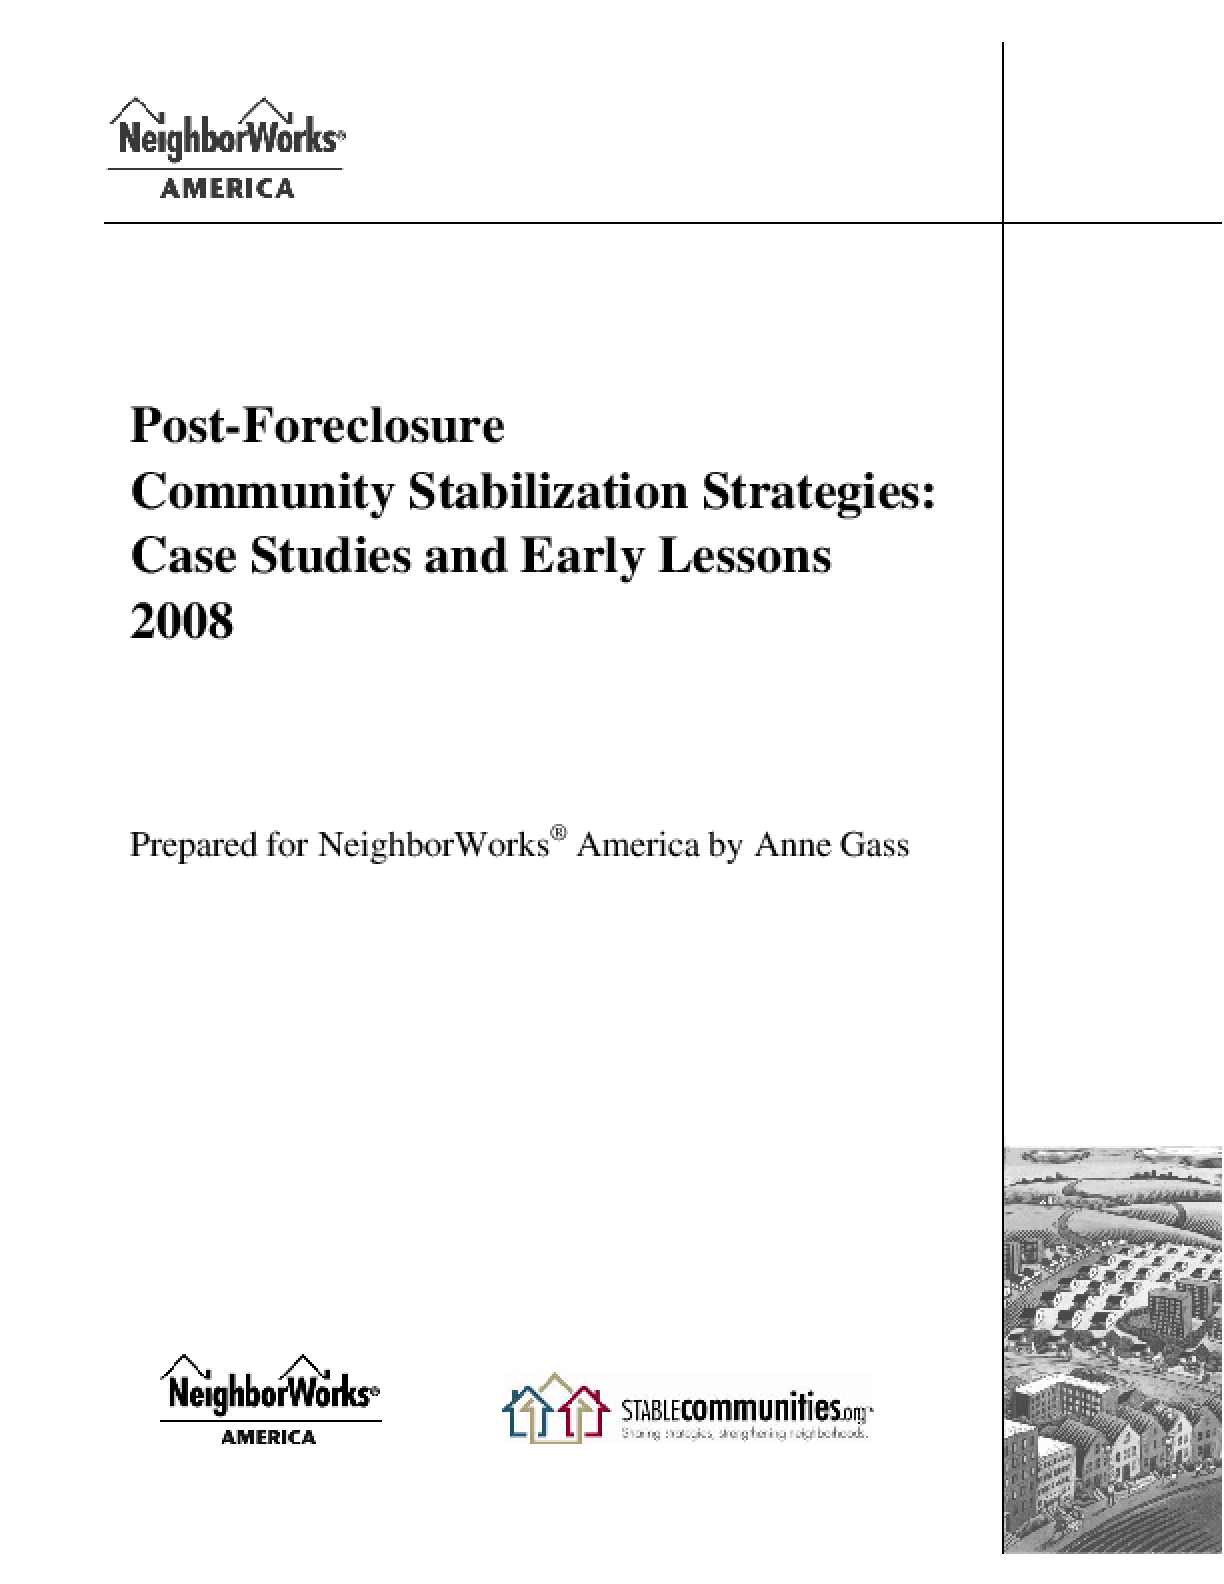 Post-Foreclosure Community Stabilization Strategies: Case Studies and Early Lessons 2008